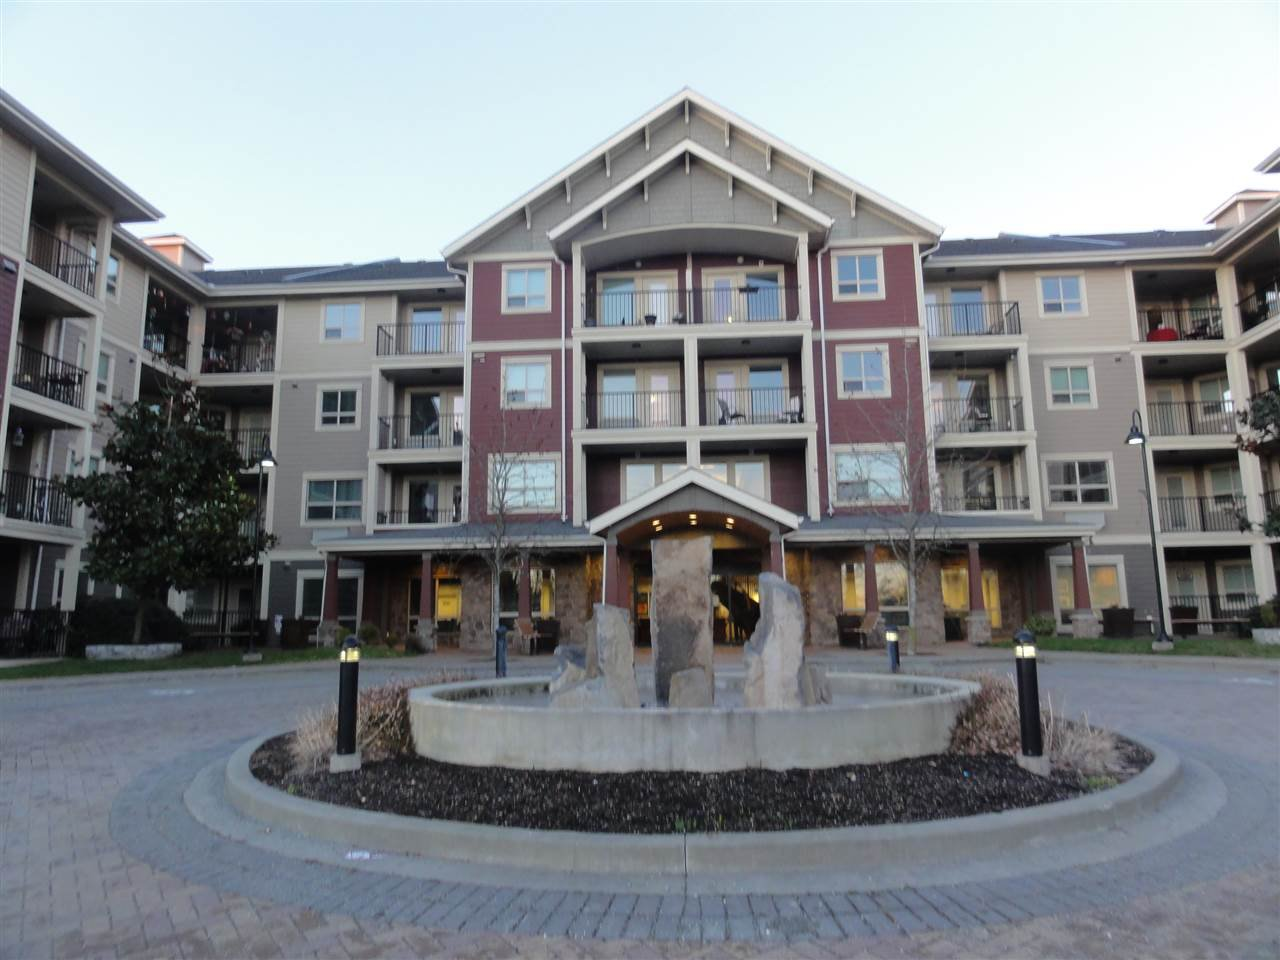 "Main Photo: 431 22323 48 Avenue in Langley: Murrayville Condo for sale in ""AVALON GARDENS"" : MLS®# R2134591"